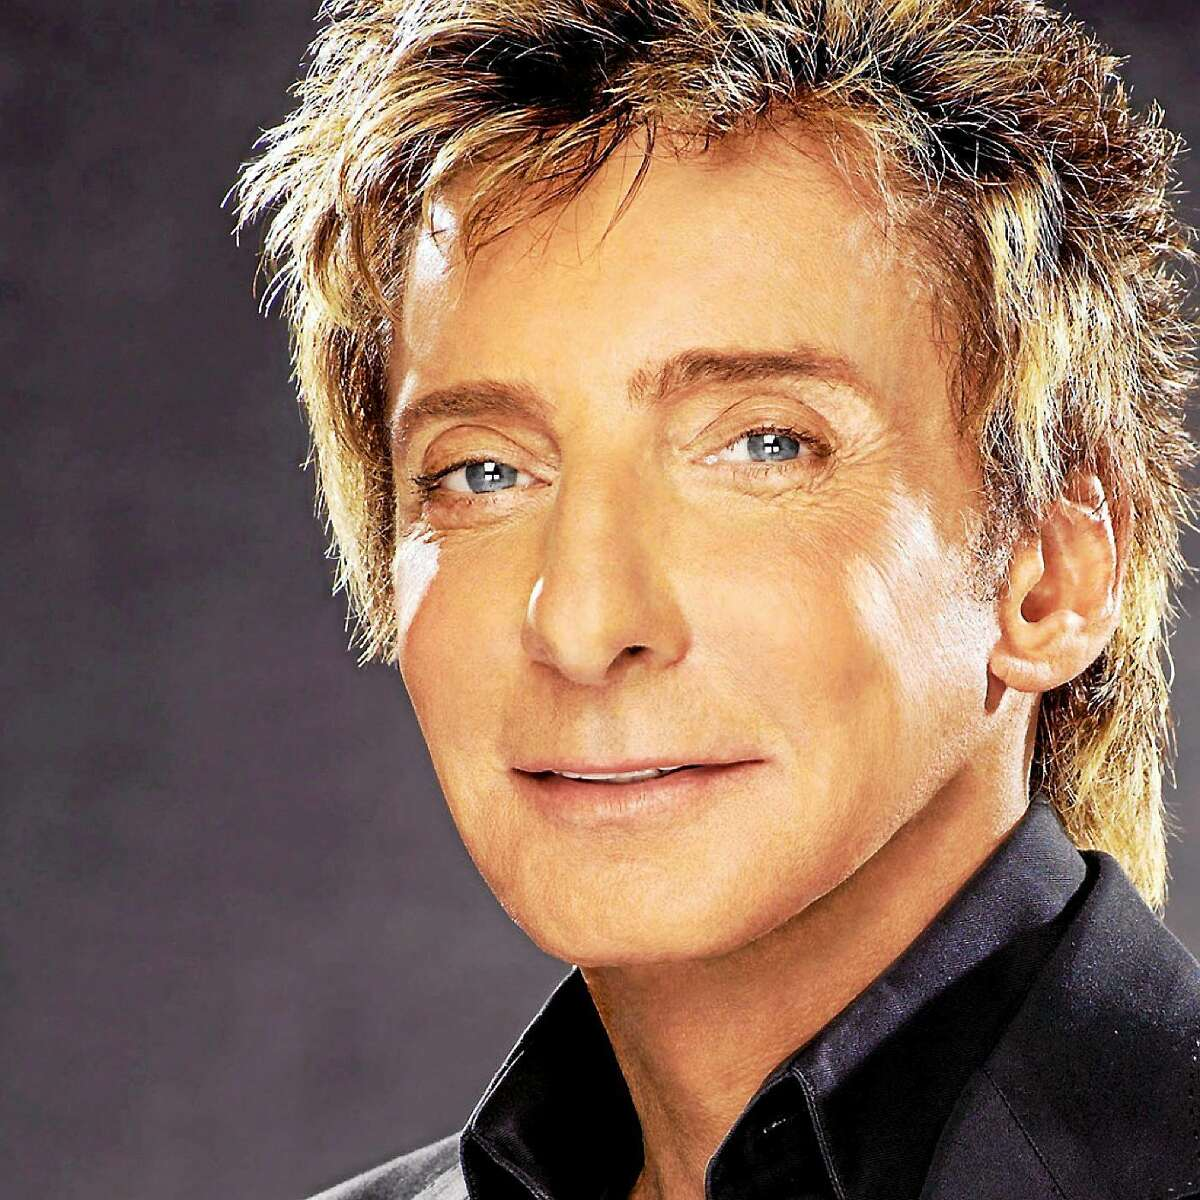 Contributed photo Singer and songwriter Barry Manilow is set to perform at Foxwoods Resort & Casino on Saturday, March 28. The music legend is currently on his multiple city ìOne Last Timeî tour. A Songwriters Hall of Fame inductee, Manilow has triumphed in every medium of entertainment. With worldwide record sales exceeding 80 million, he has ranked as the top Adult Contemporary chart artist of all time with more than 50 Top 40 hits. The opening act is saxophonist Dave Koz. For tickets or more information on this upcoming show, call the Foxwoods box office at 800-200-2882.